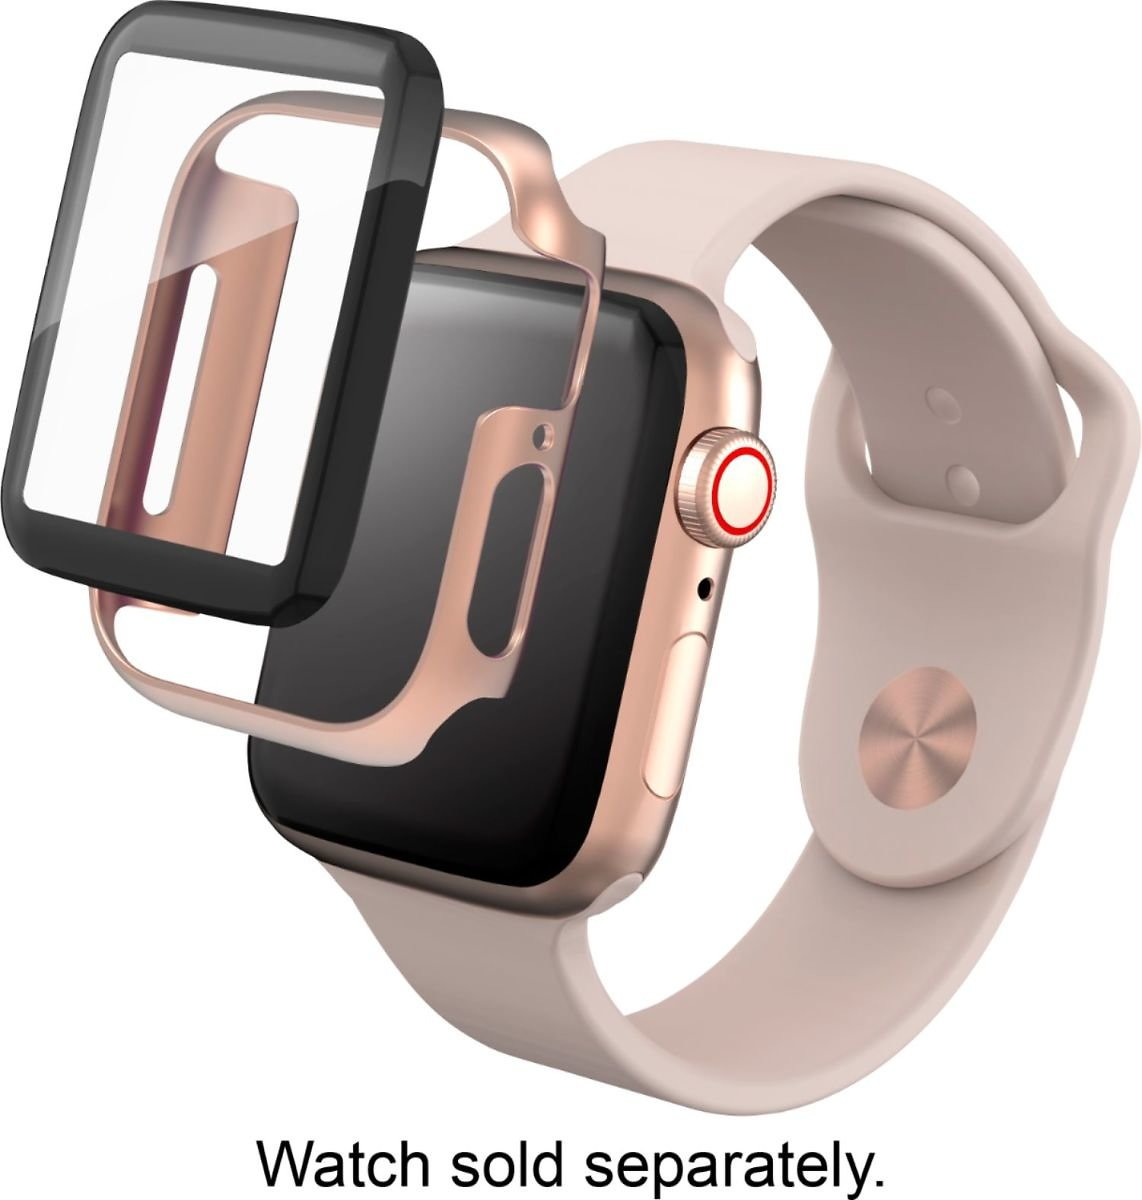 ZAGG InvisibleShield Glass+ 360 Screen Protector for Apple Watch Series 4 40mm and Series 5 40mm Gold 200102702